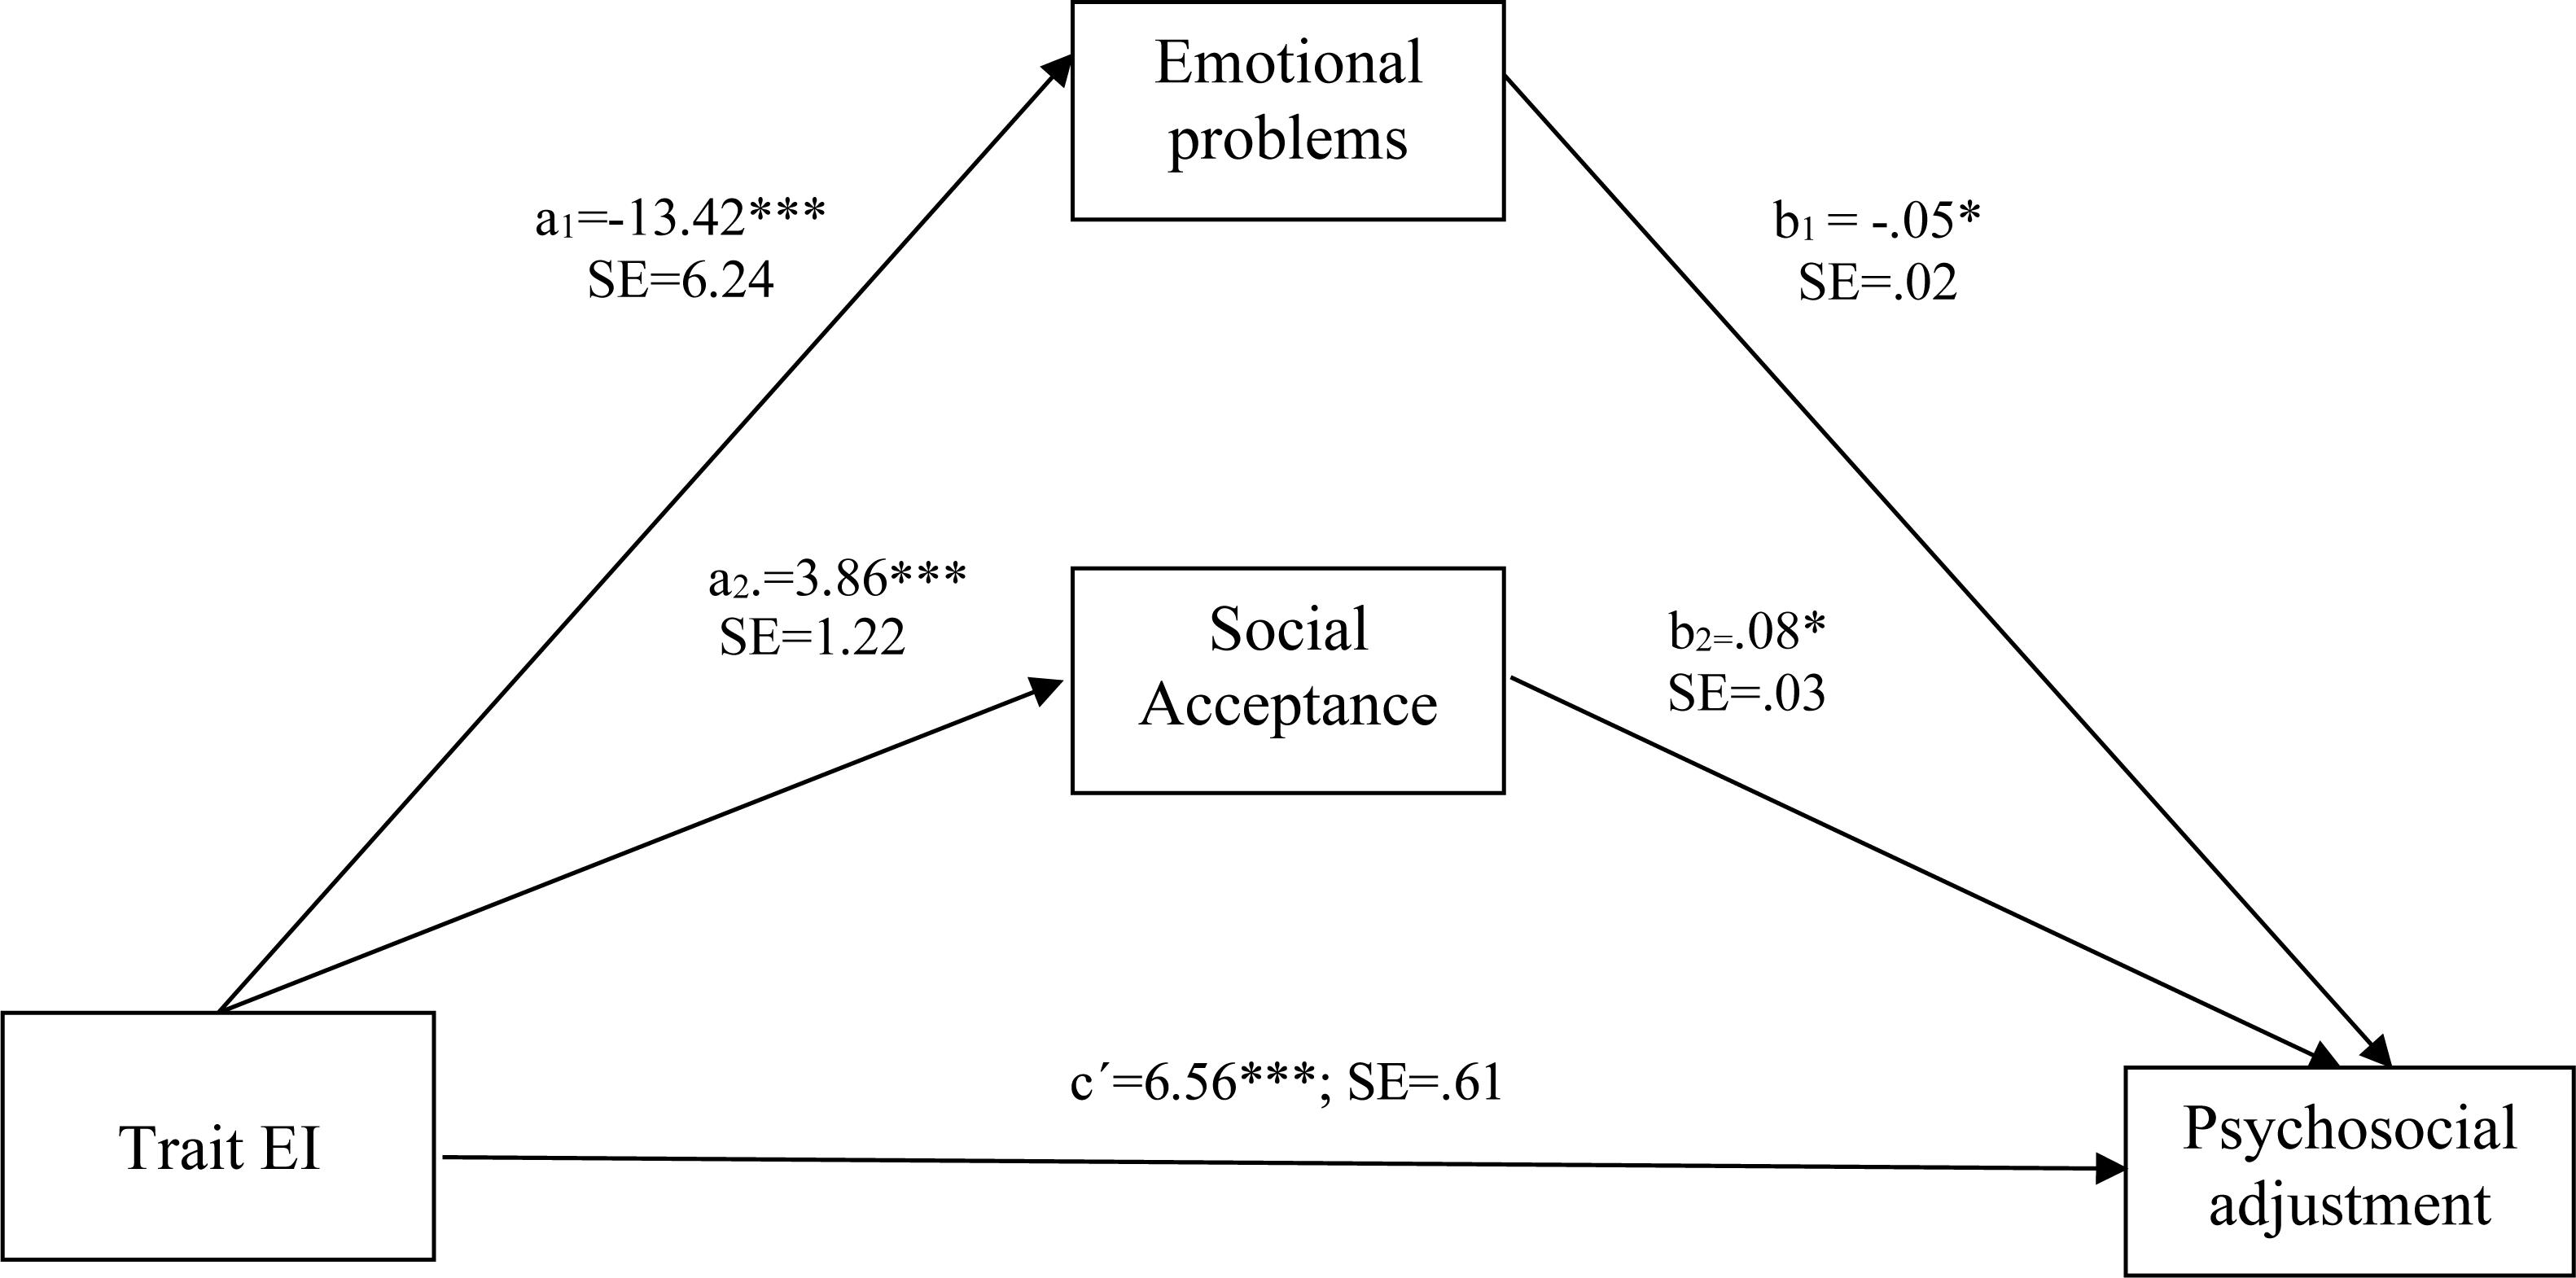 Social And Emotional Problems Related >> Frontiers Pathways Into Psychosocial Adjustment In Children